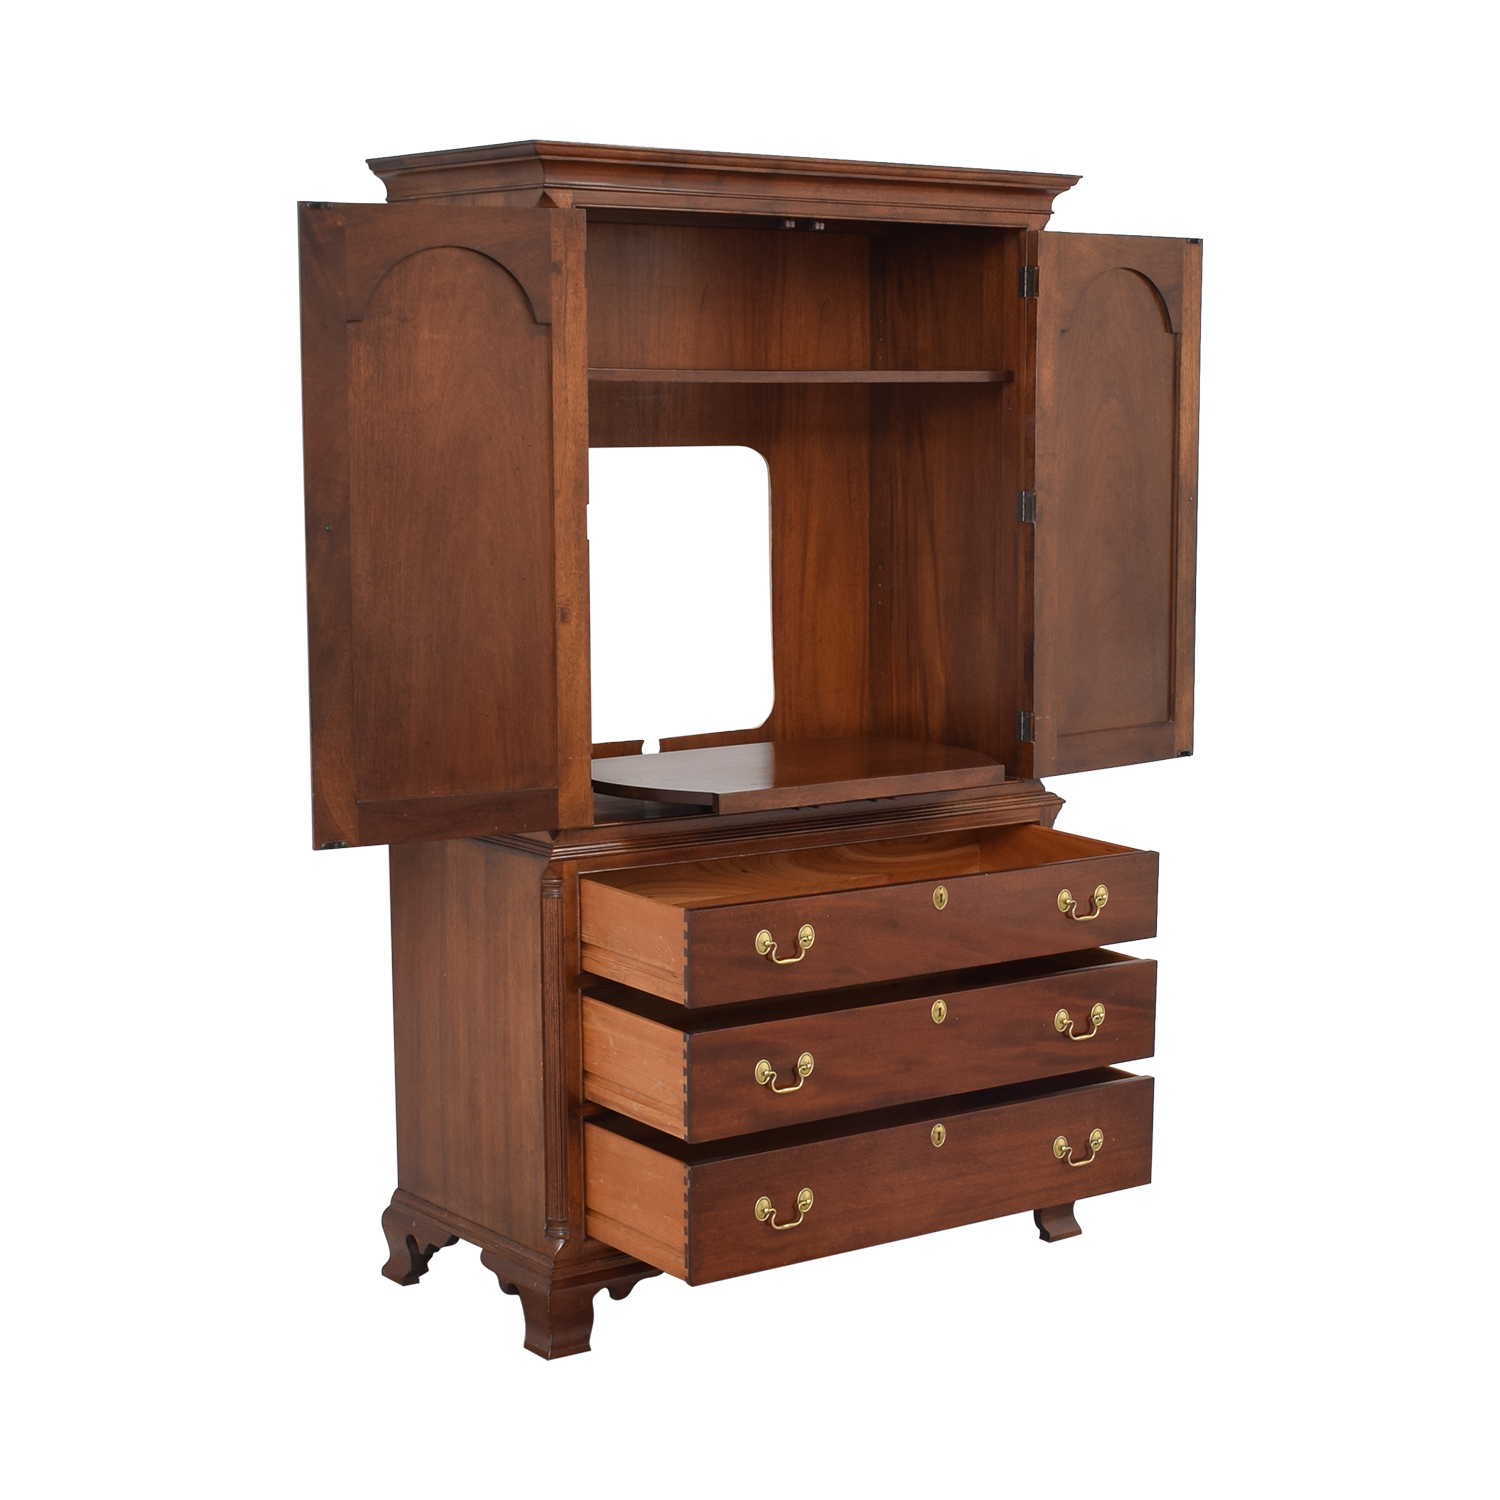 Stickley Furniture Stickley Furniture Entertainment Center Armoire dimensions